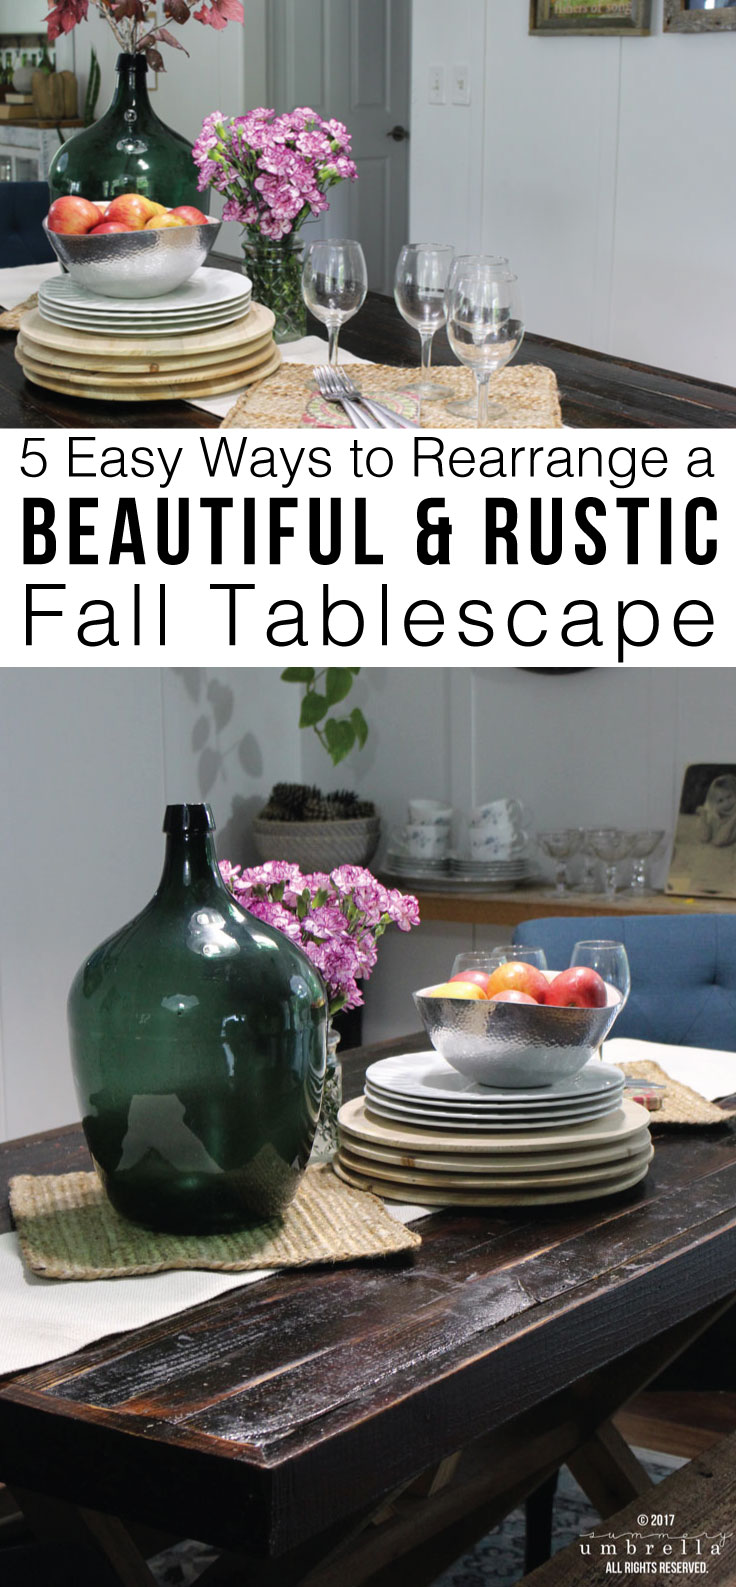 Learn how to take one super simple tablescape, and then turn it into 5 Easy Ways to Rearrange a Beautiful and Rustic Fall Tablescape!